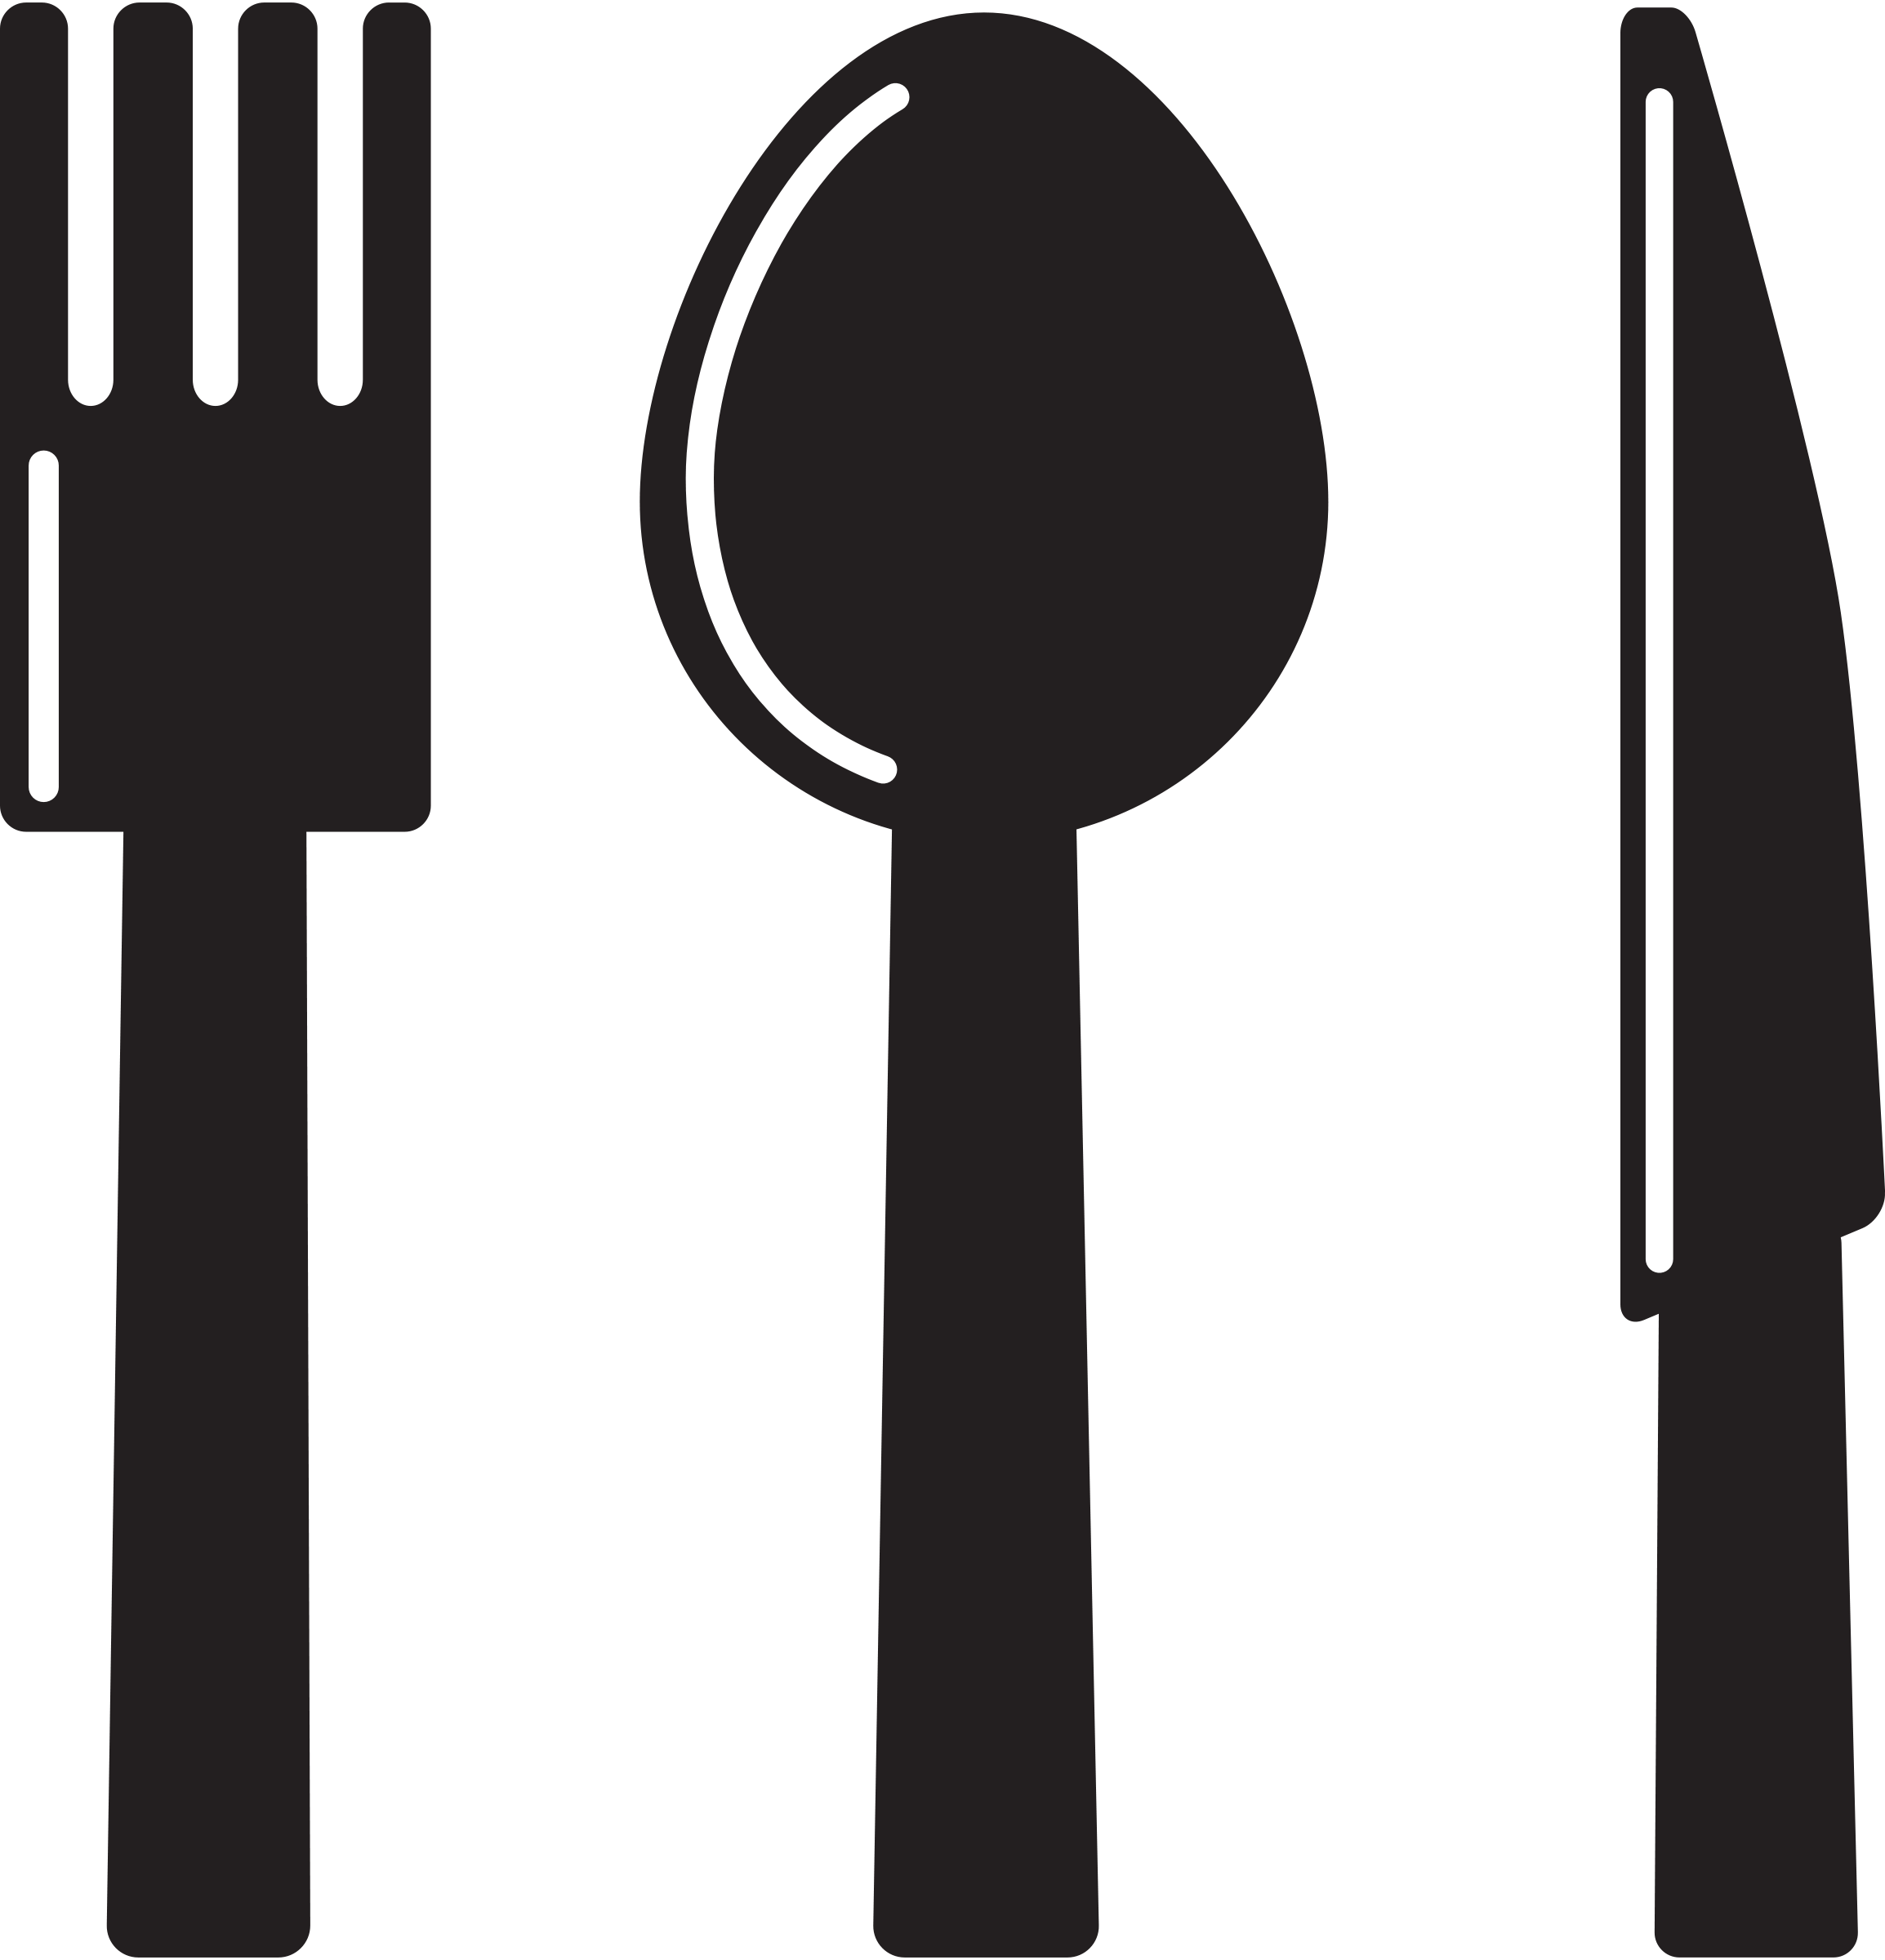 Fork png vector. Spoon free cliparts